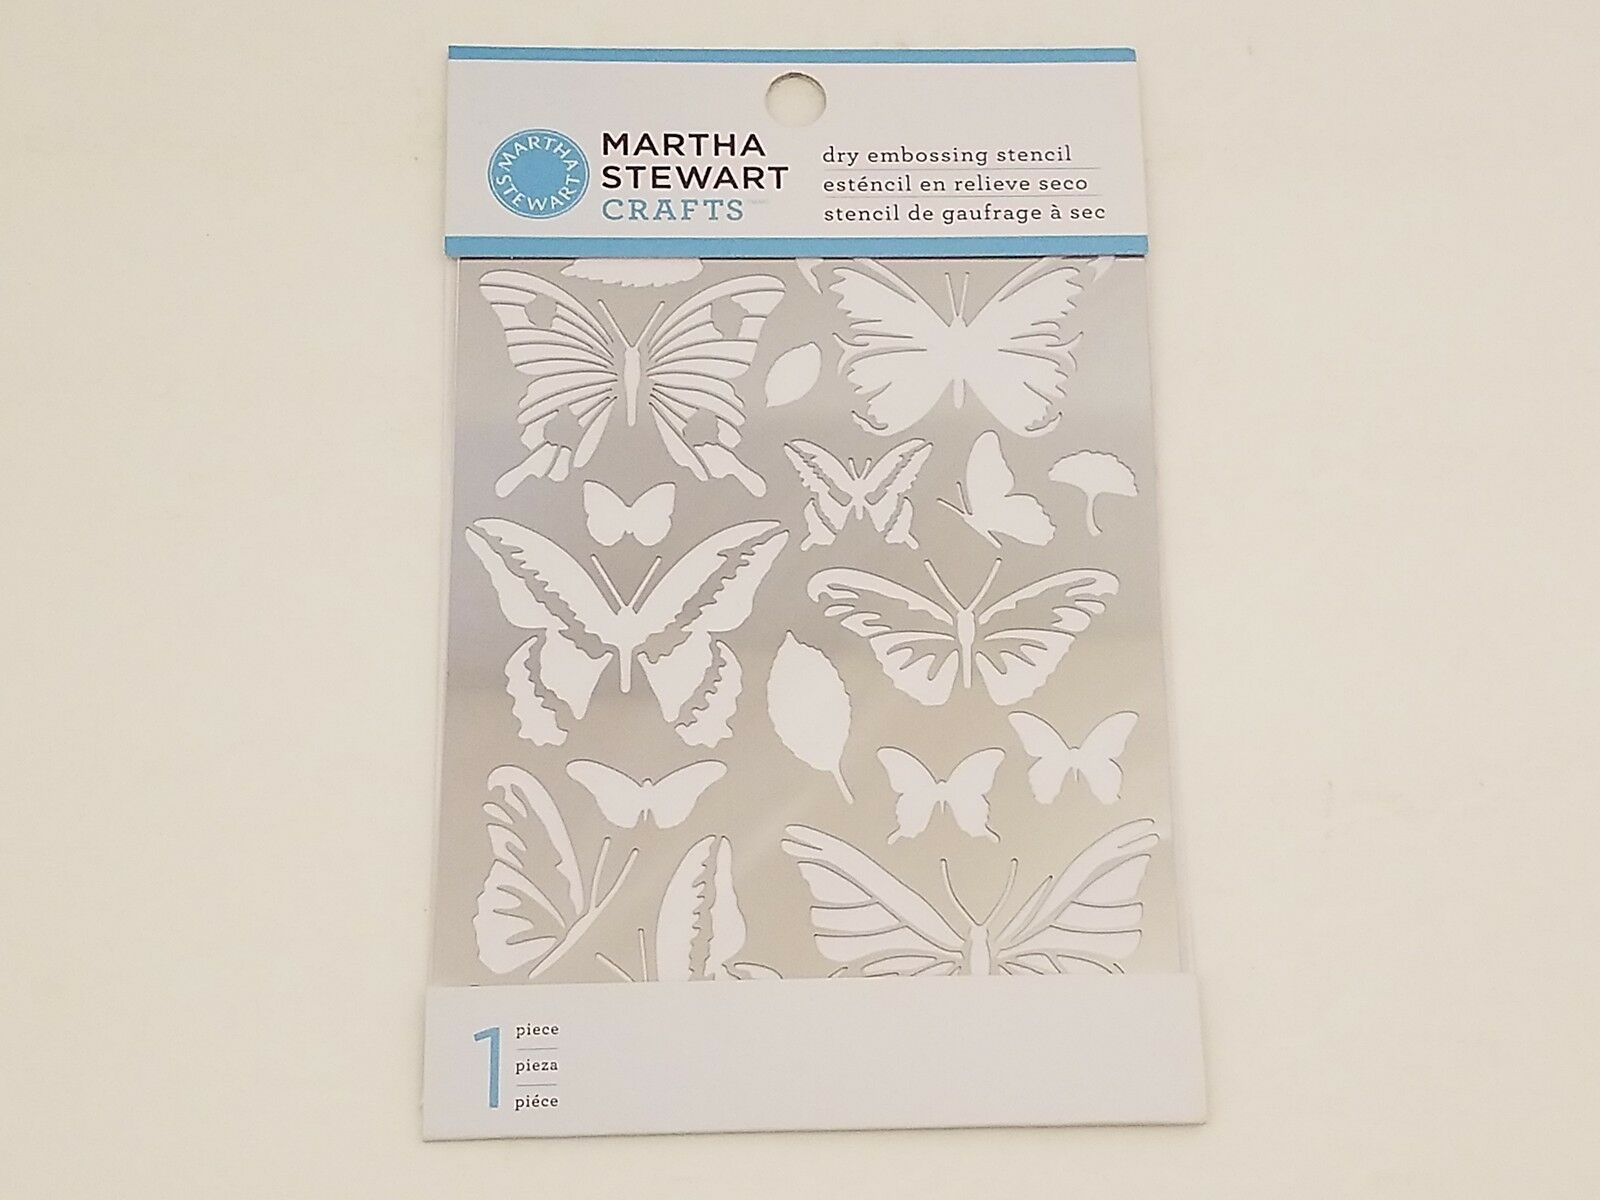 Martha Stewart Crafts Dry Embrossing Stencils Butterfly Glossary Set